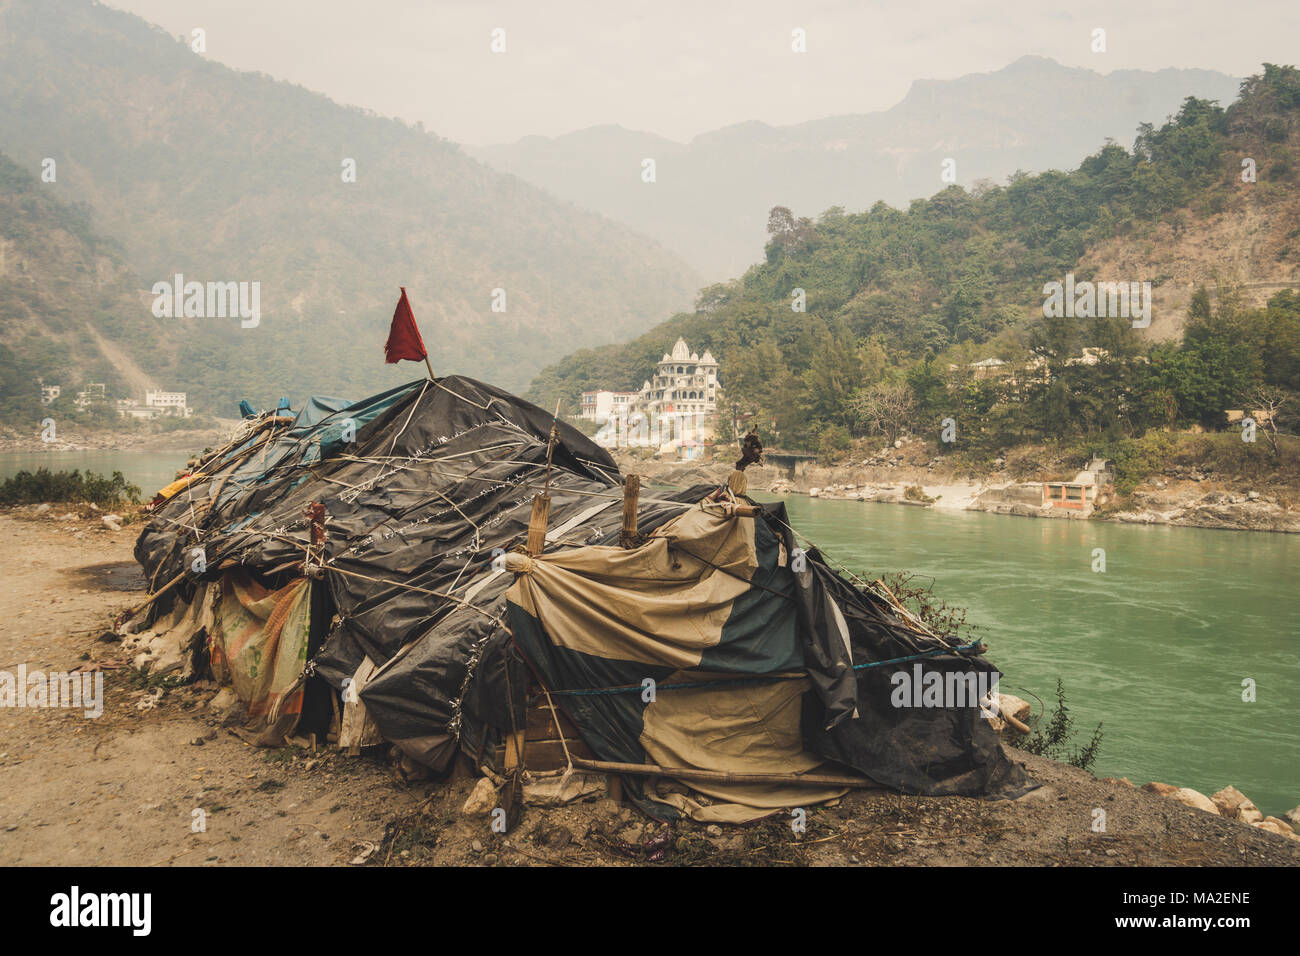 Beggar's hut by the river Ganges Rishikesh on the background of a large expensive temple. lower caste. Social inequality. The problem of poverty and t - Stock Image